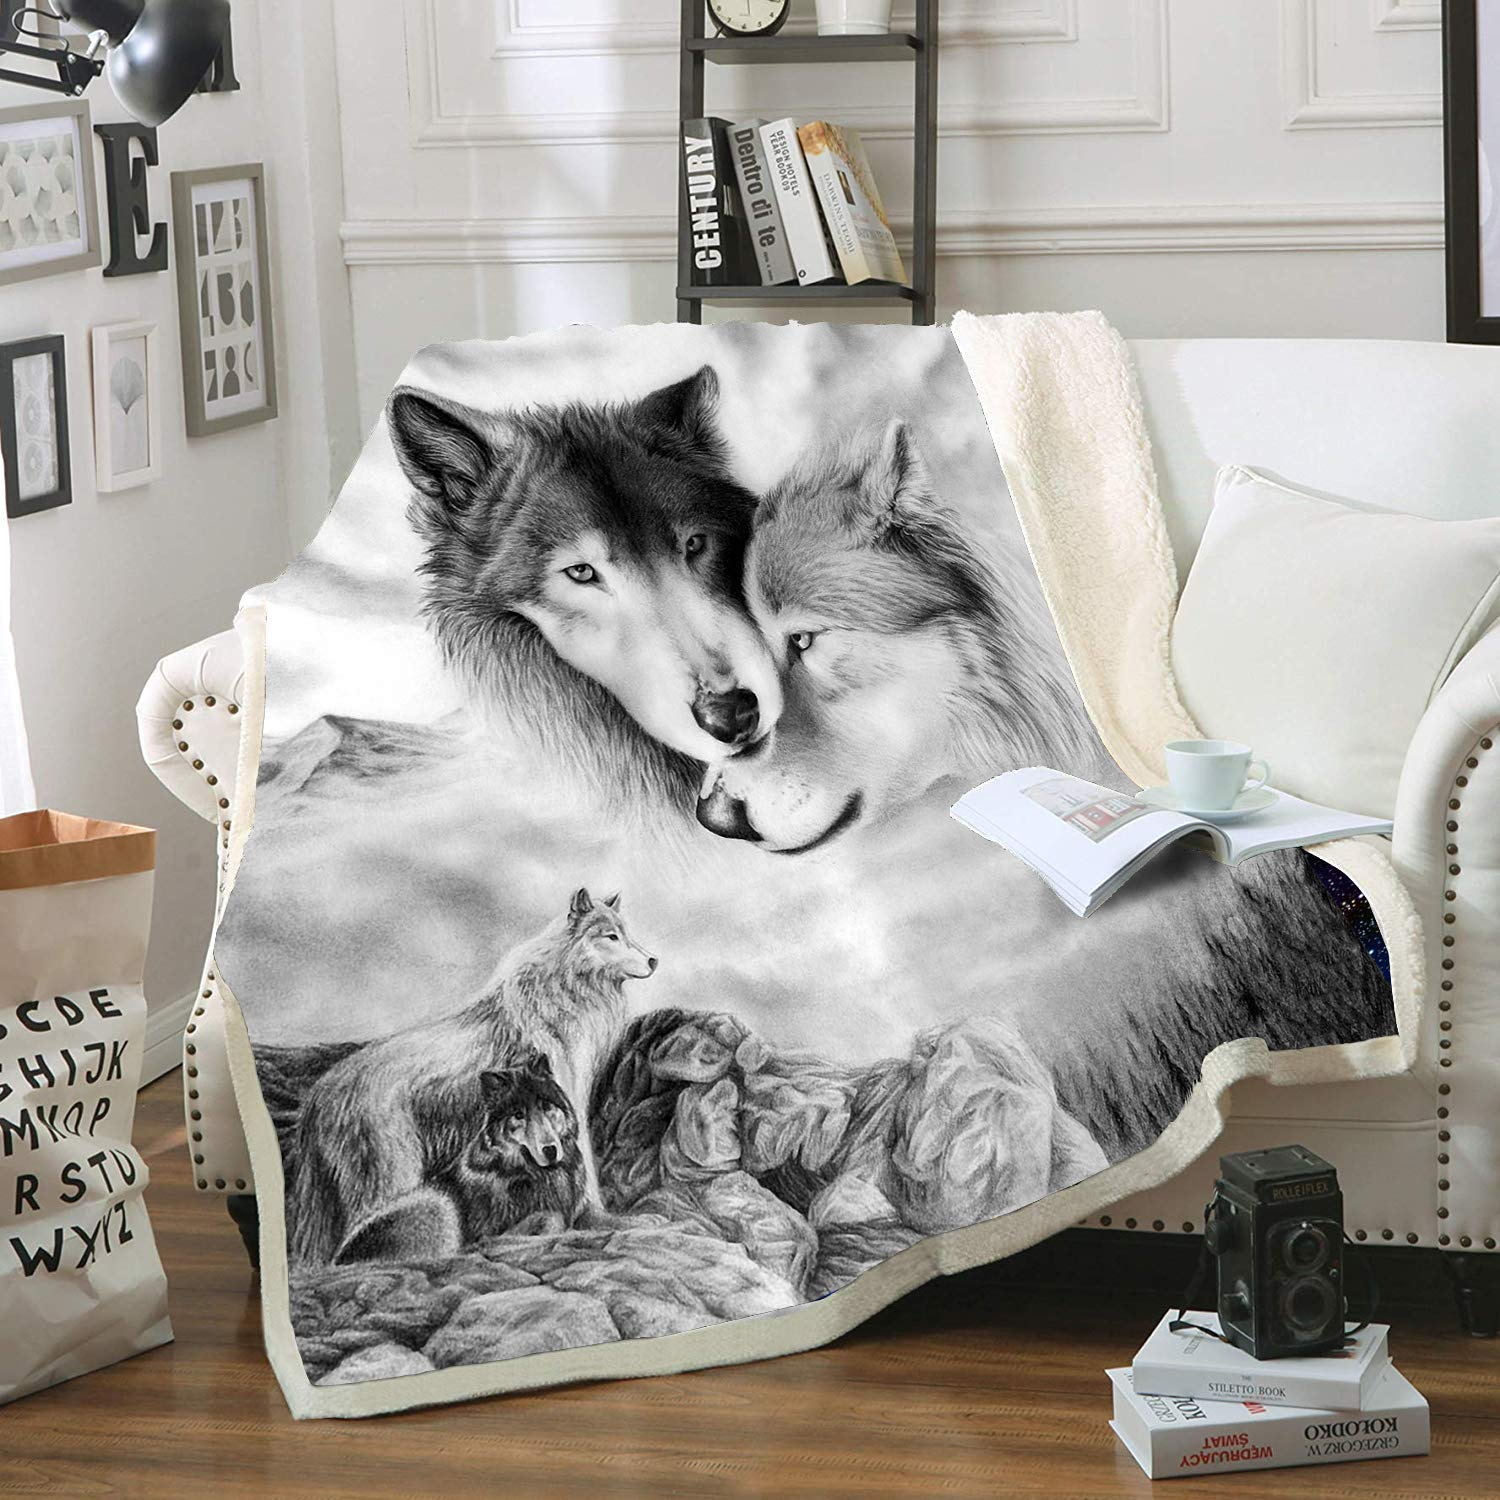 "HOME Gray Wolf Blanket Comfort Warmth Soft Cozy Air Conditioning Machine Wash Black and White Rose Skull Sherpa Fleece Blanket (Throw 60""x80"") (Gray Wolf)"